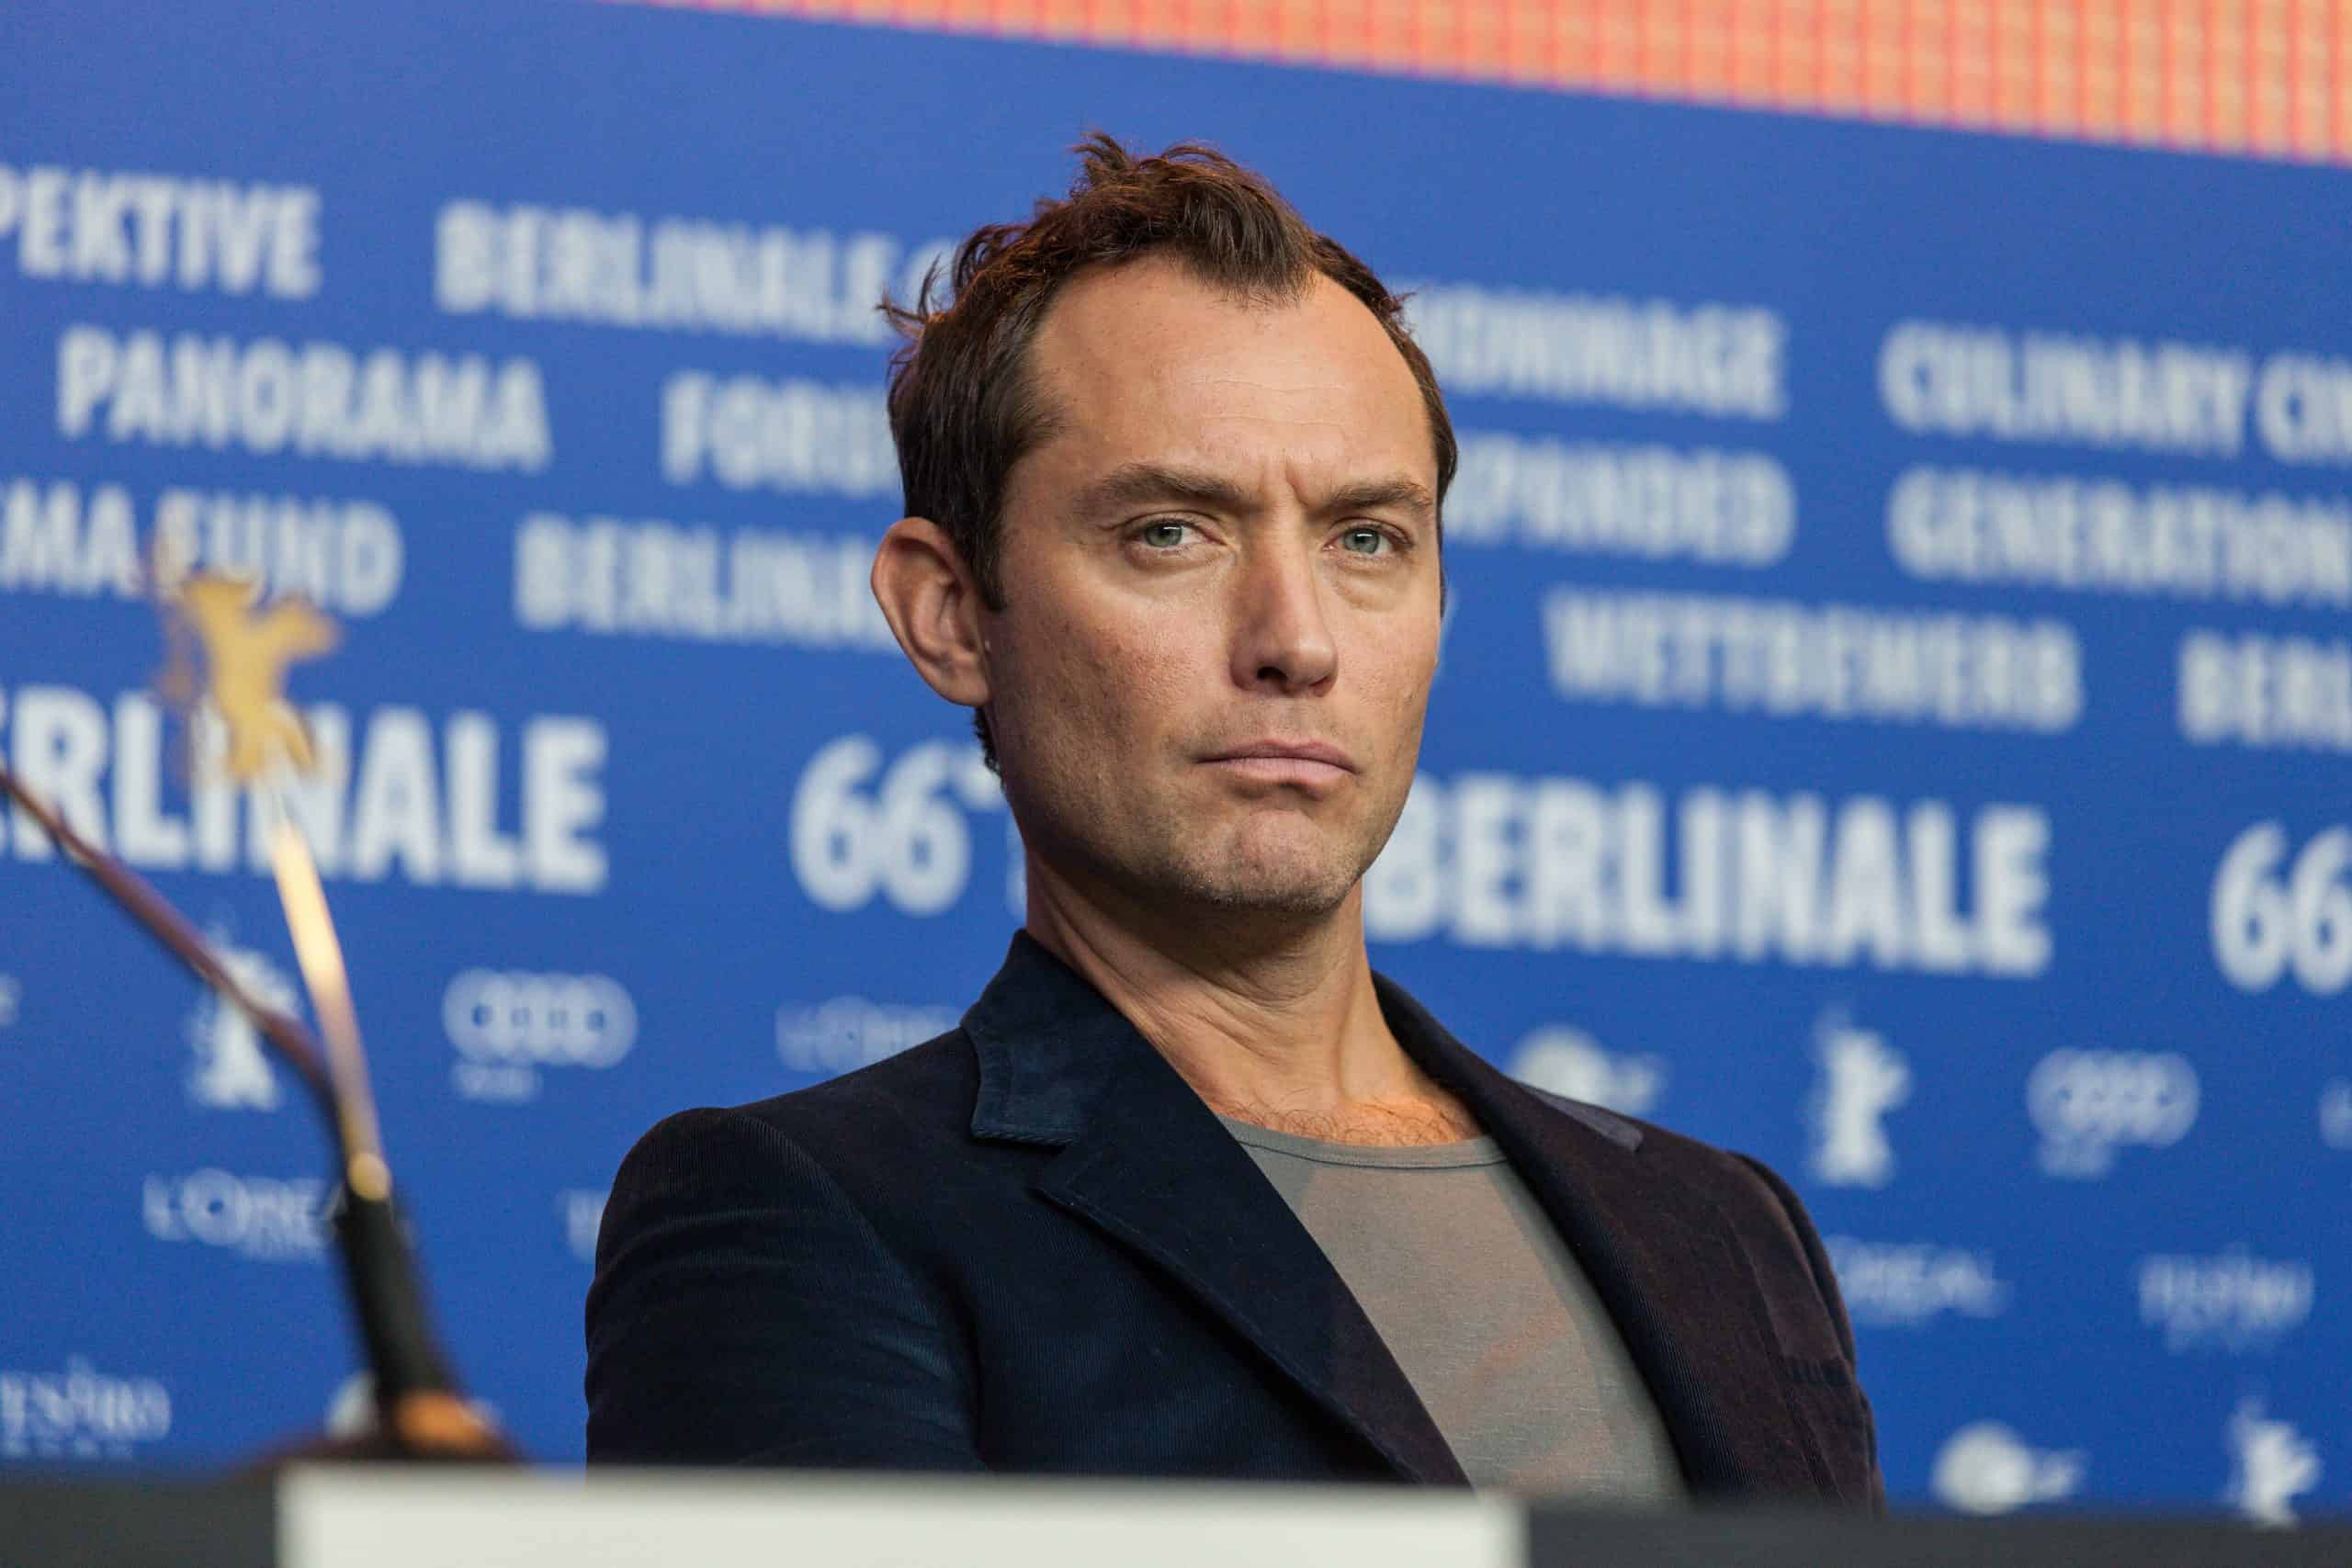 male pattern baldness actor Jude Law